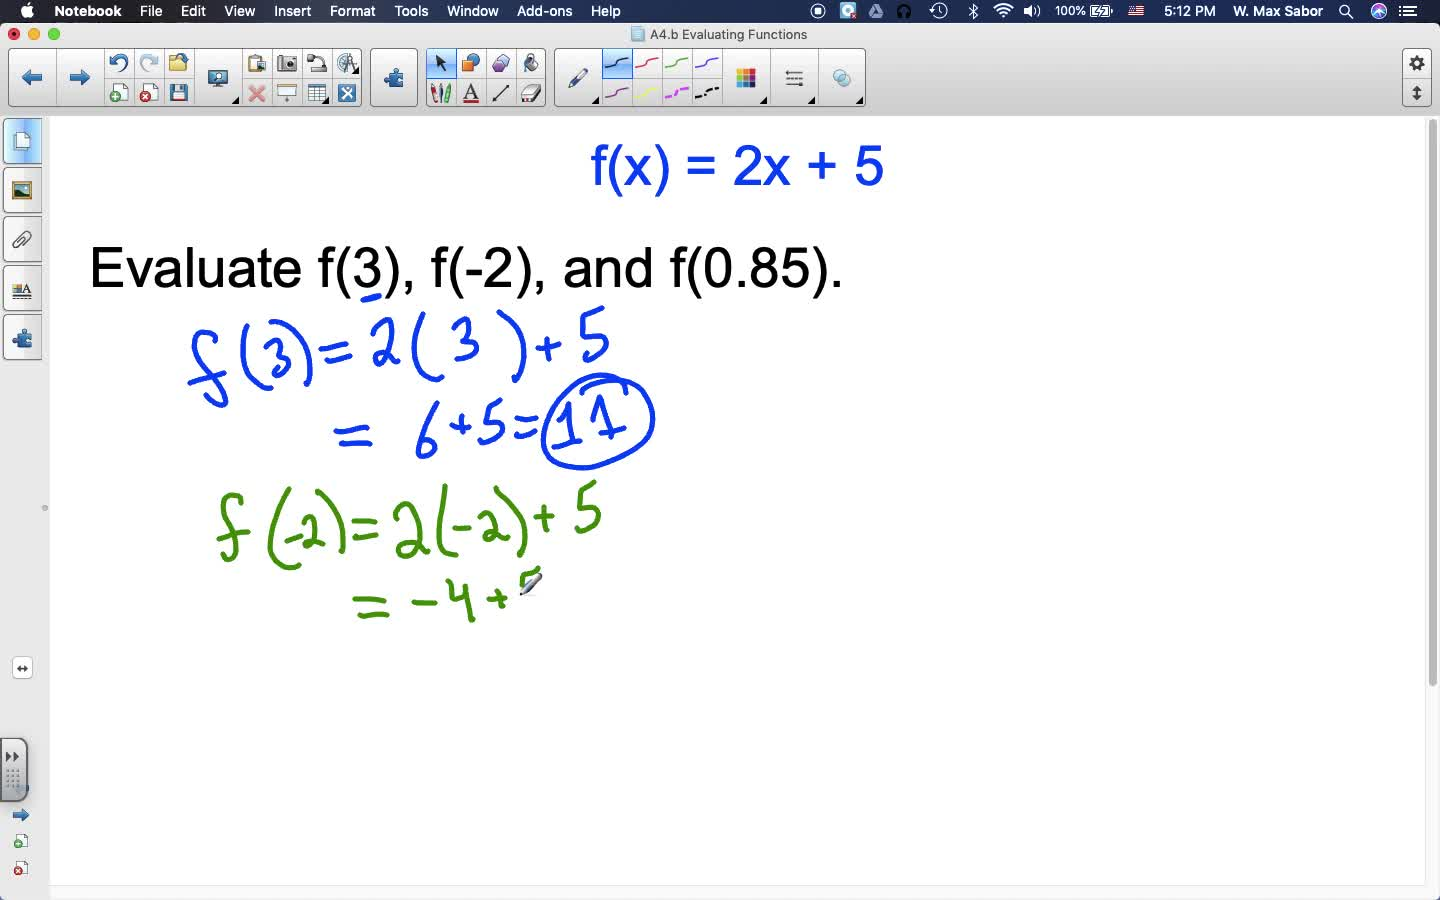 A4.b Evaluating Functions